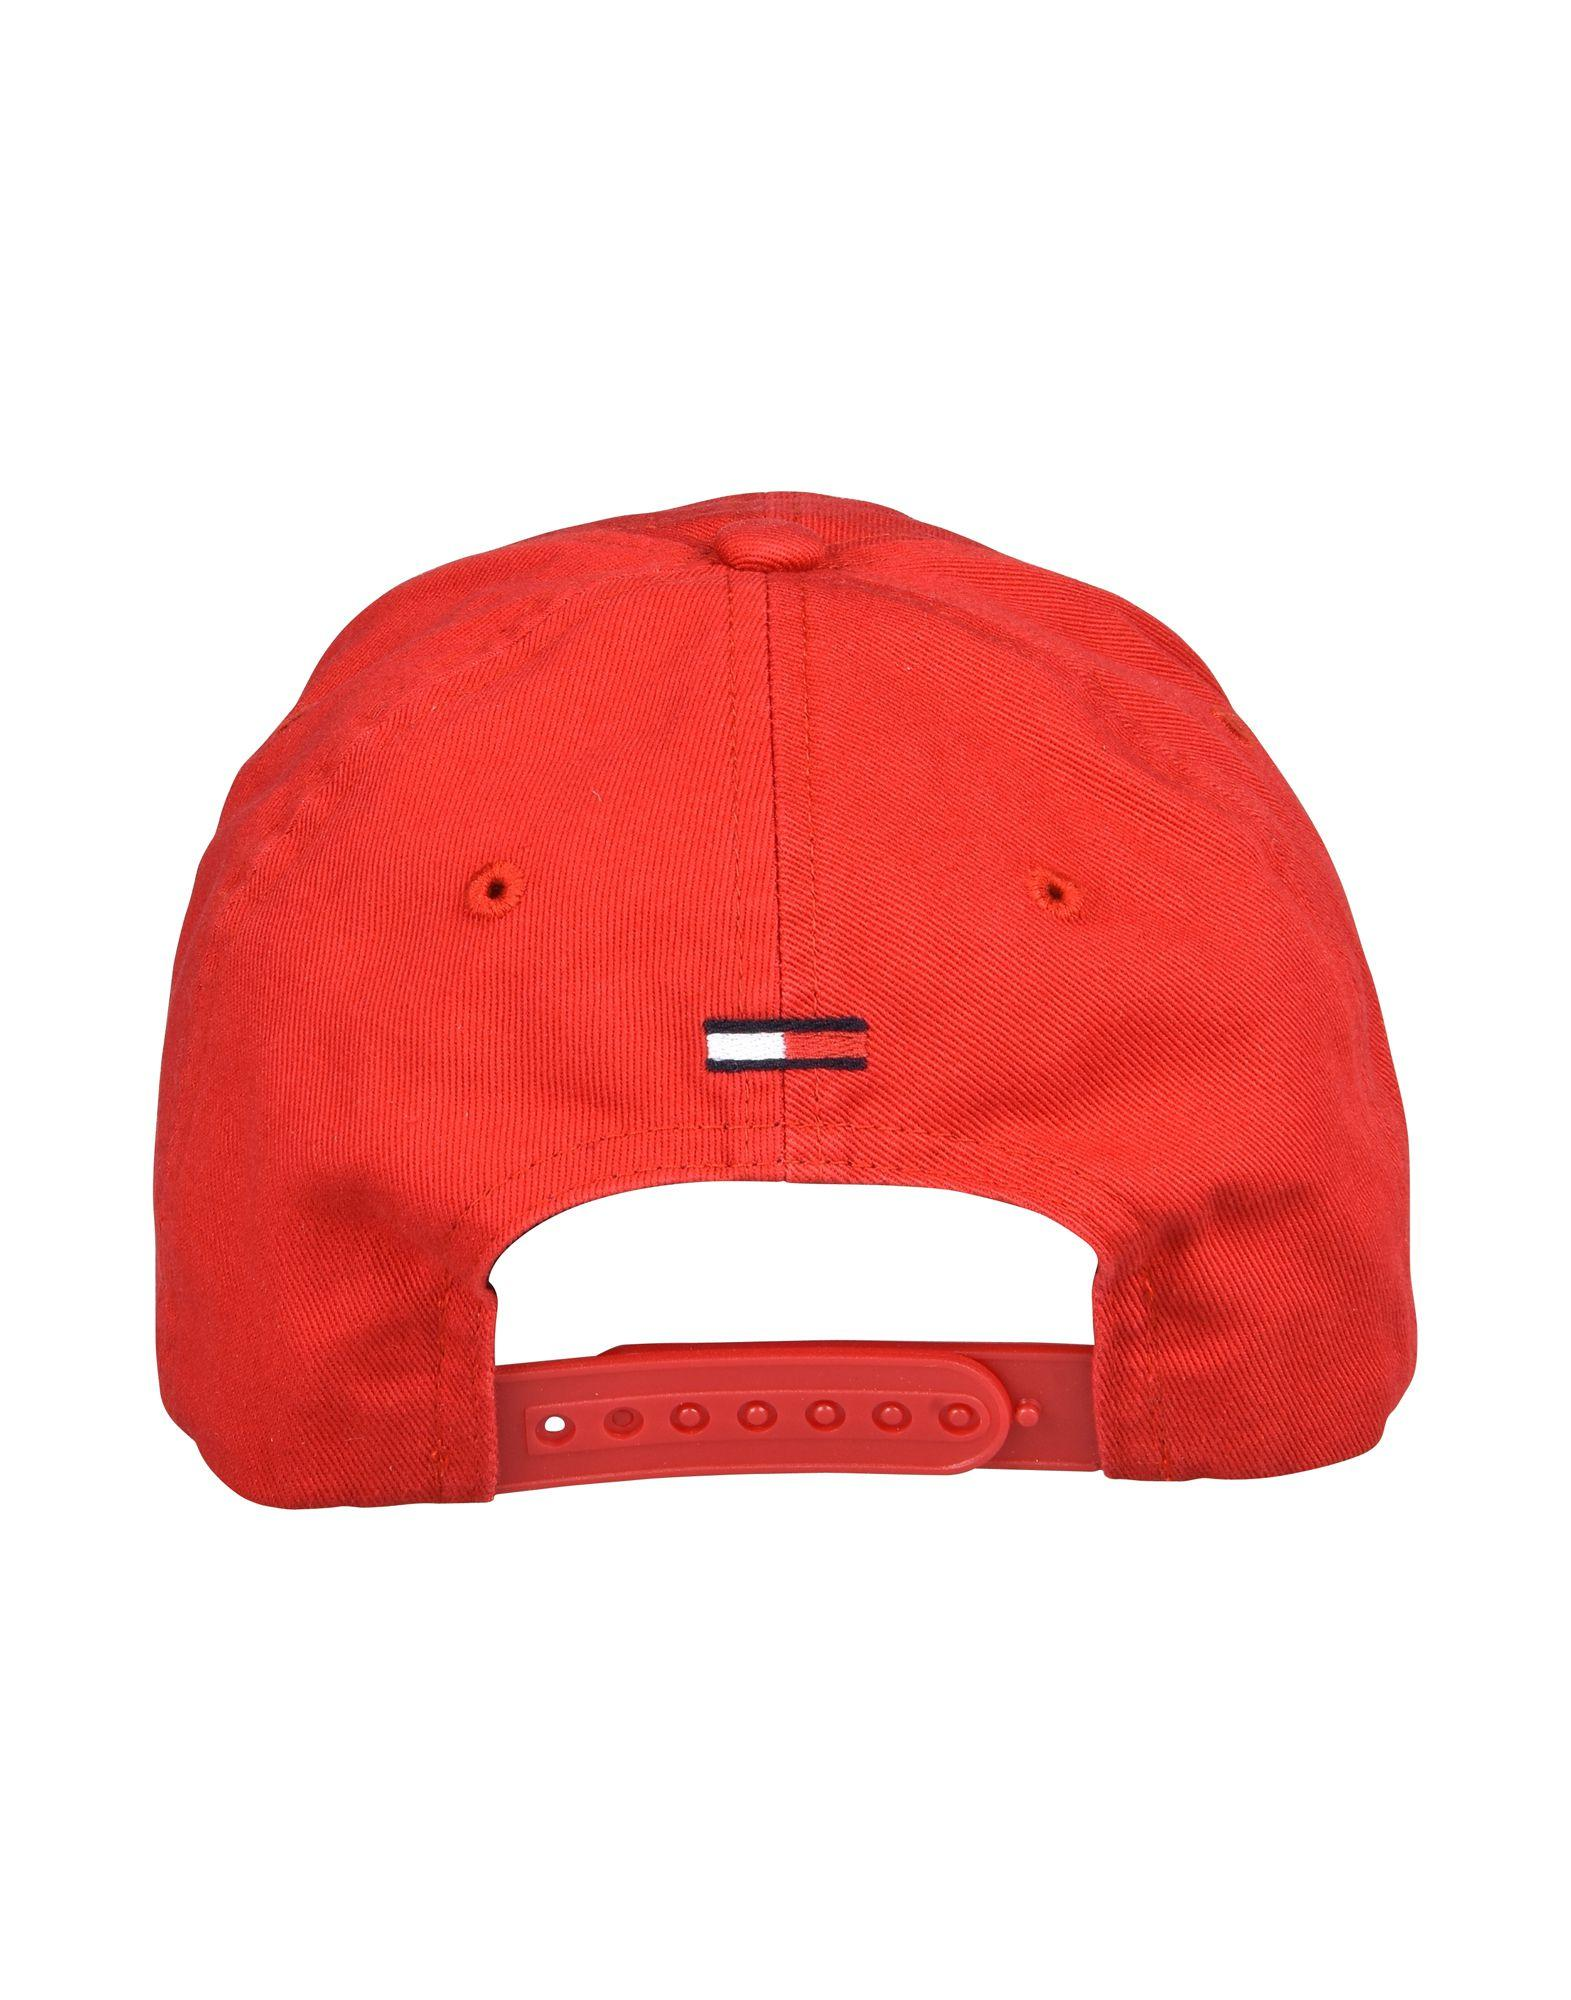 Tommy Hilfiger Hat in Red for Men - Lyst 31e2c4507a3